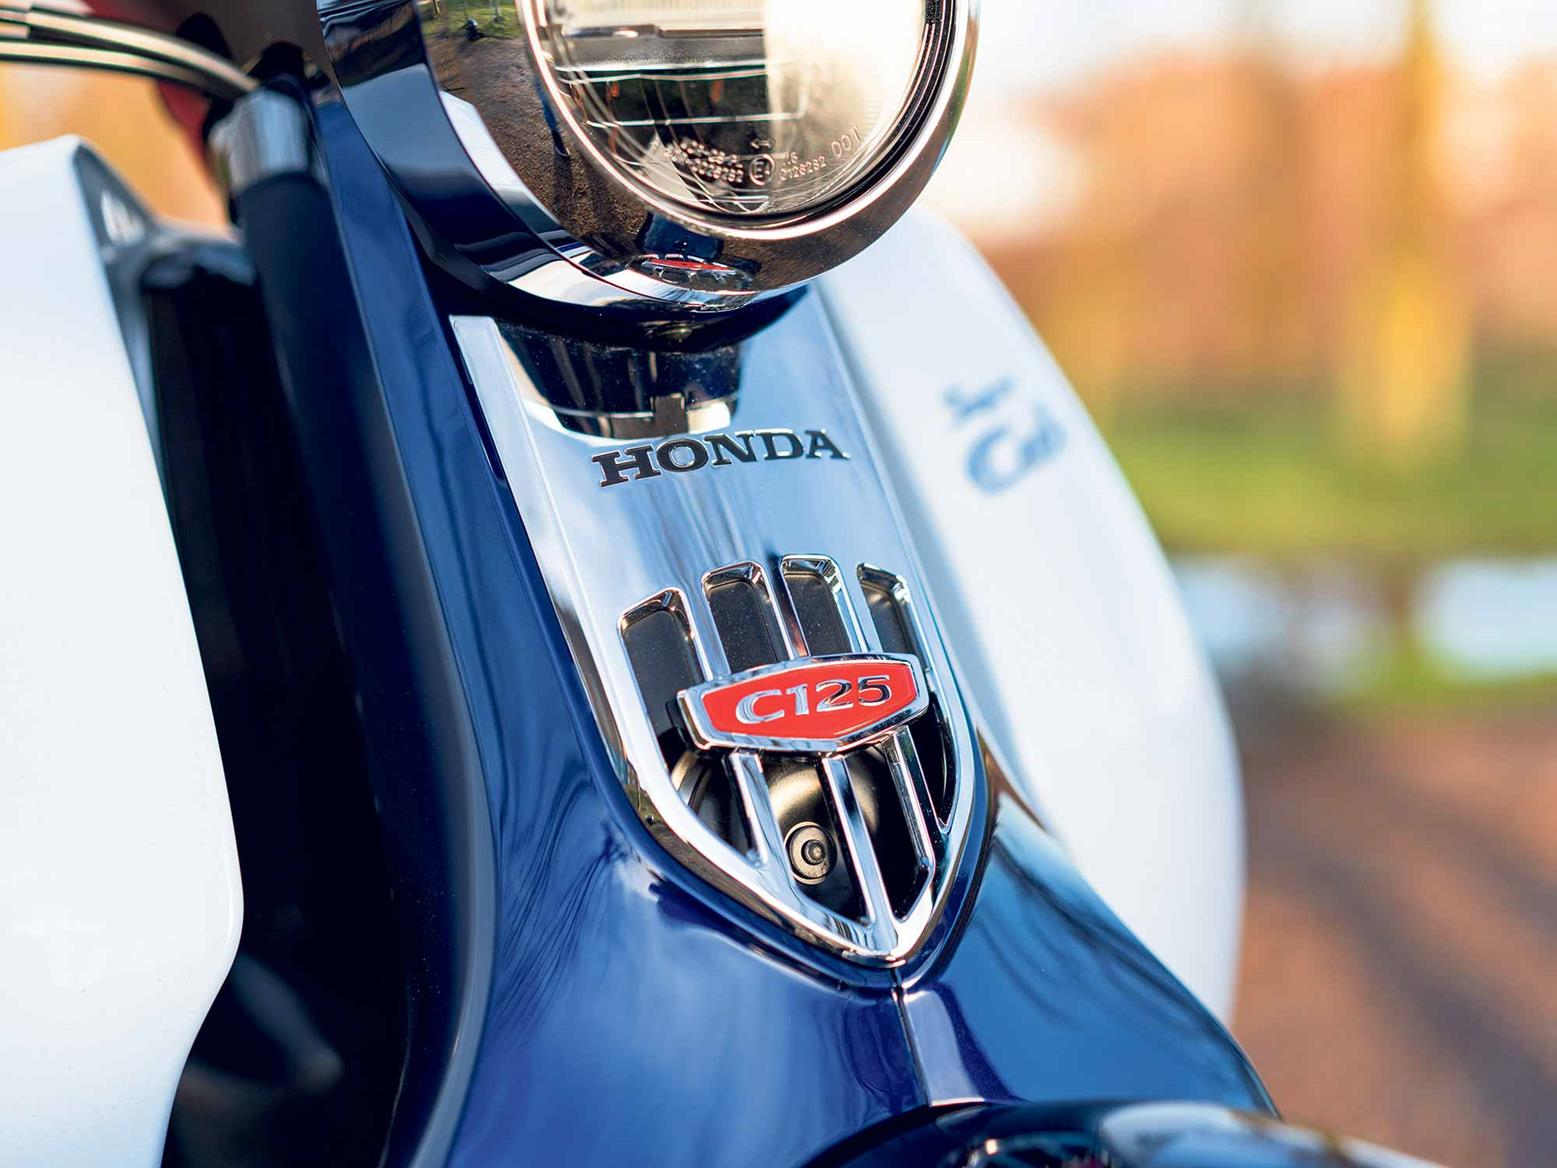 Honda SuperCub C125 badge